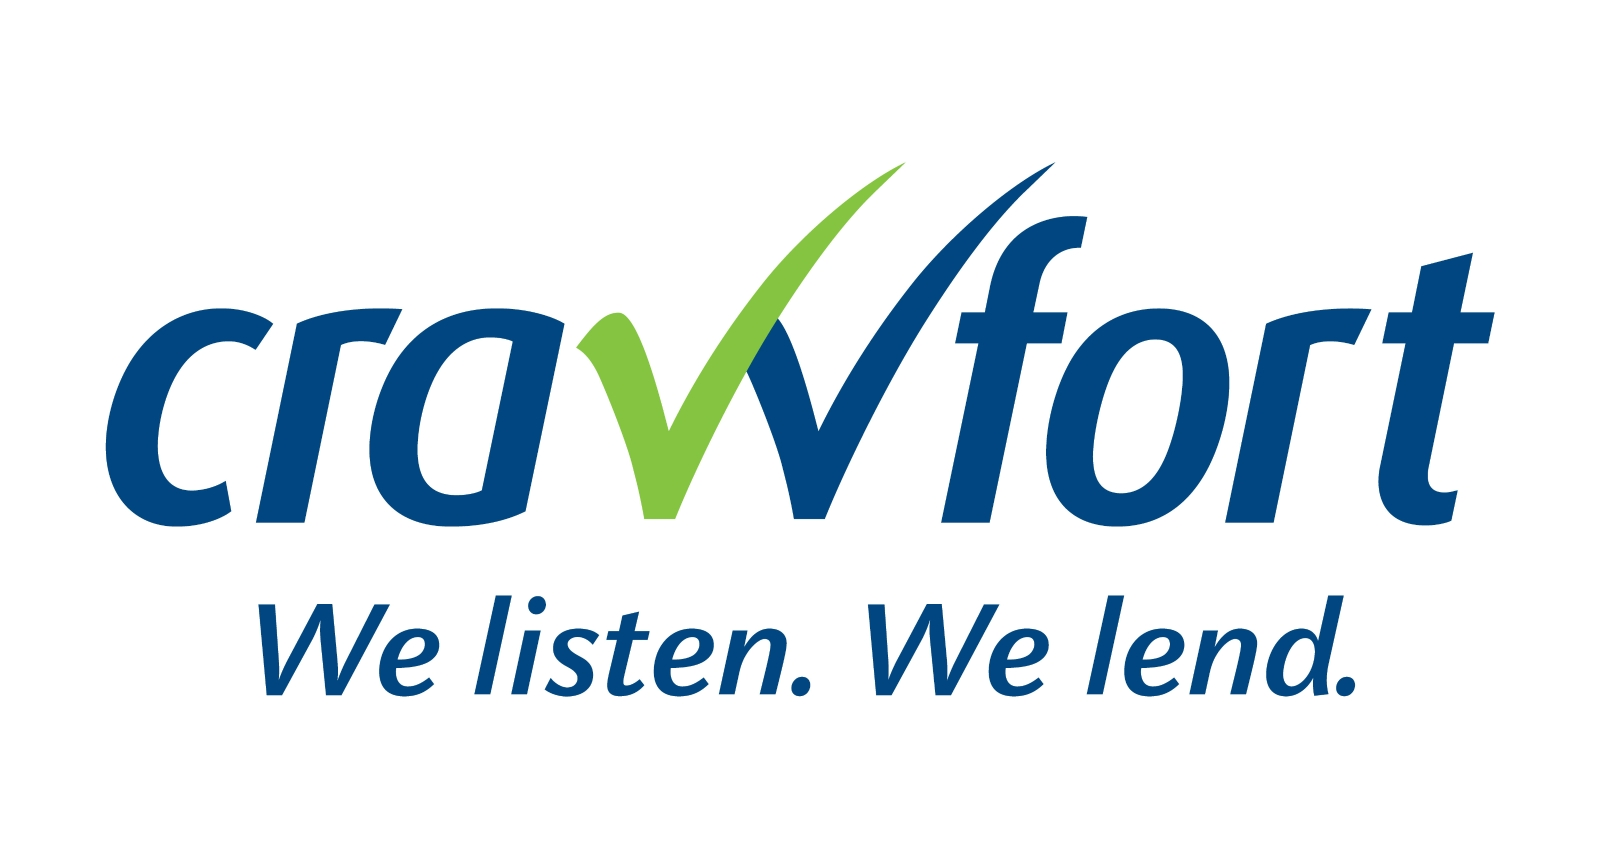 Crawfort Pte Ltd